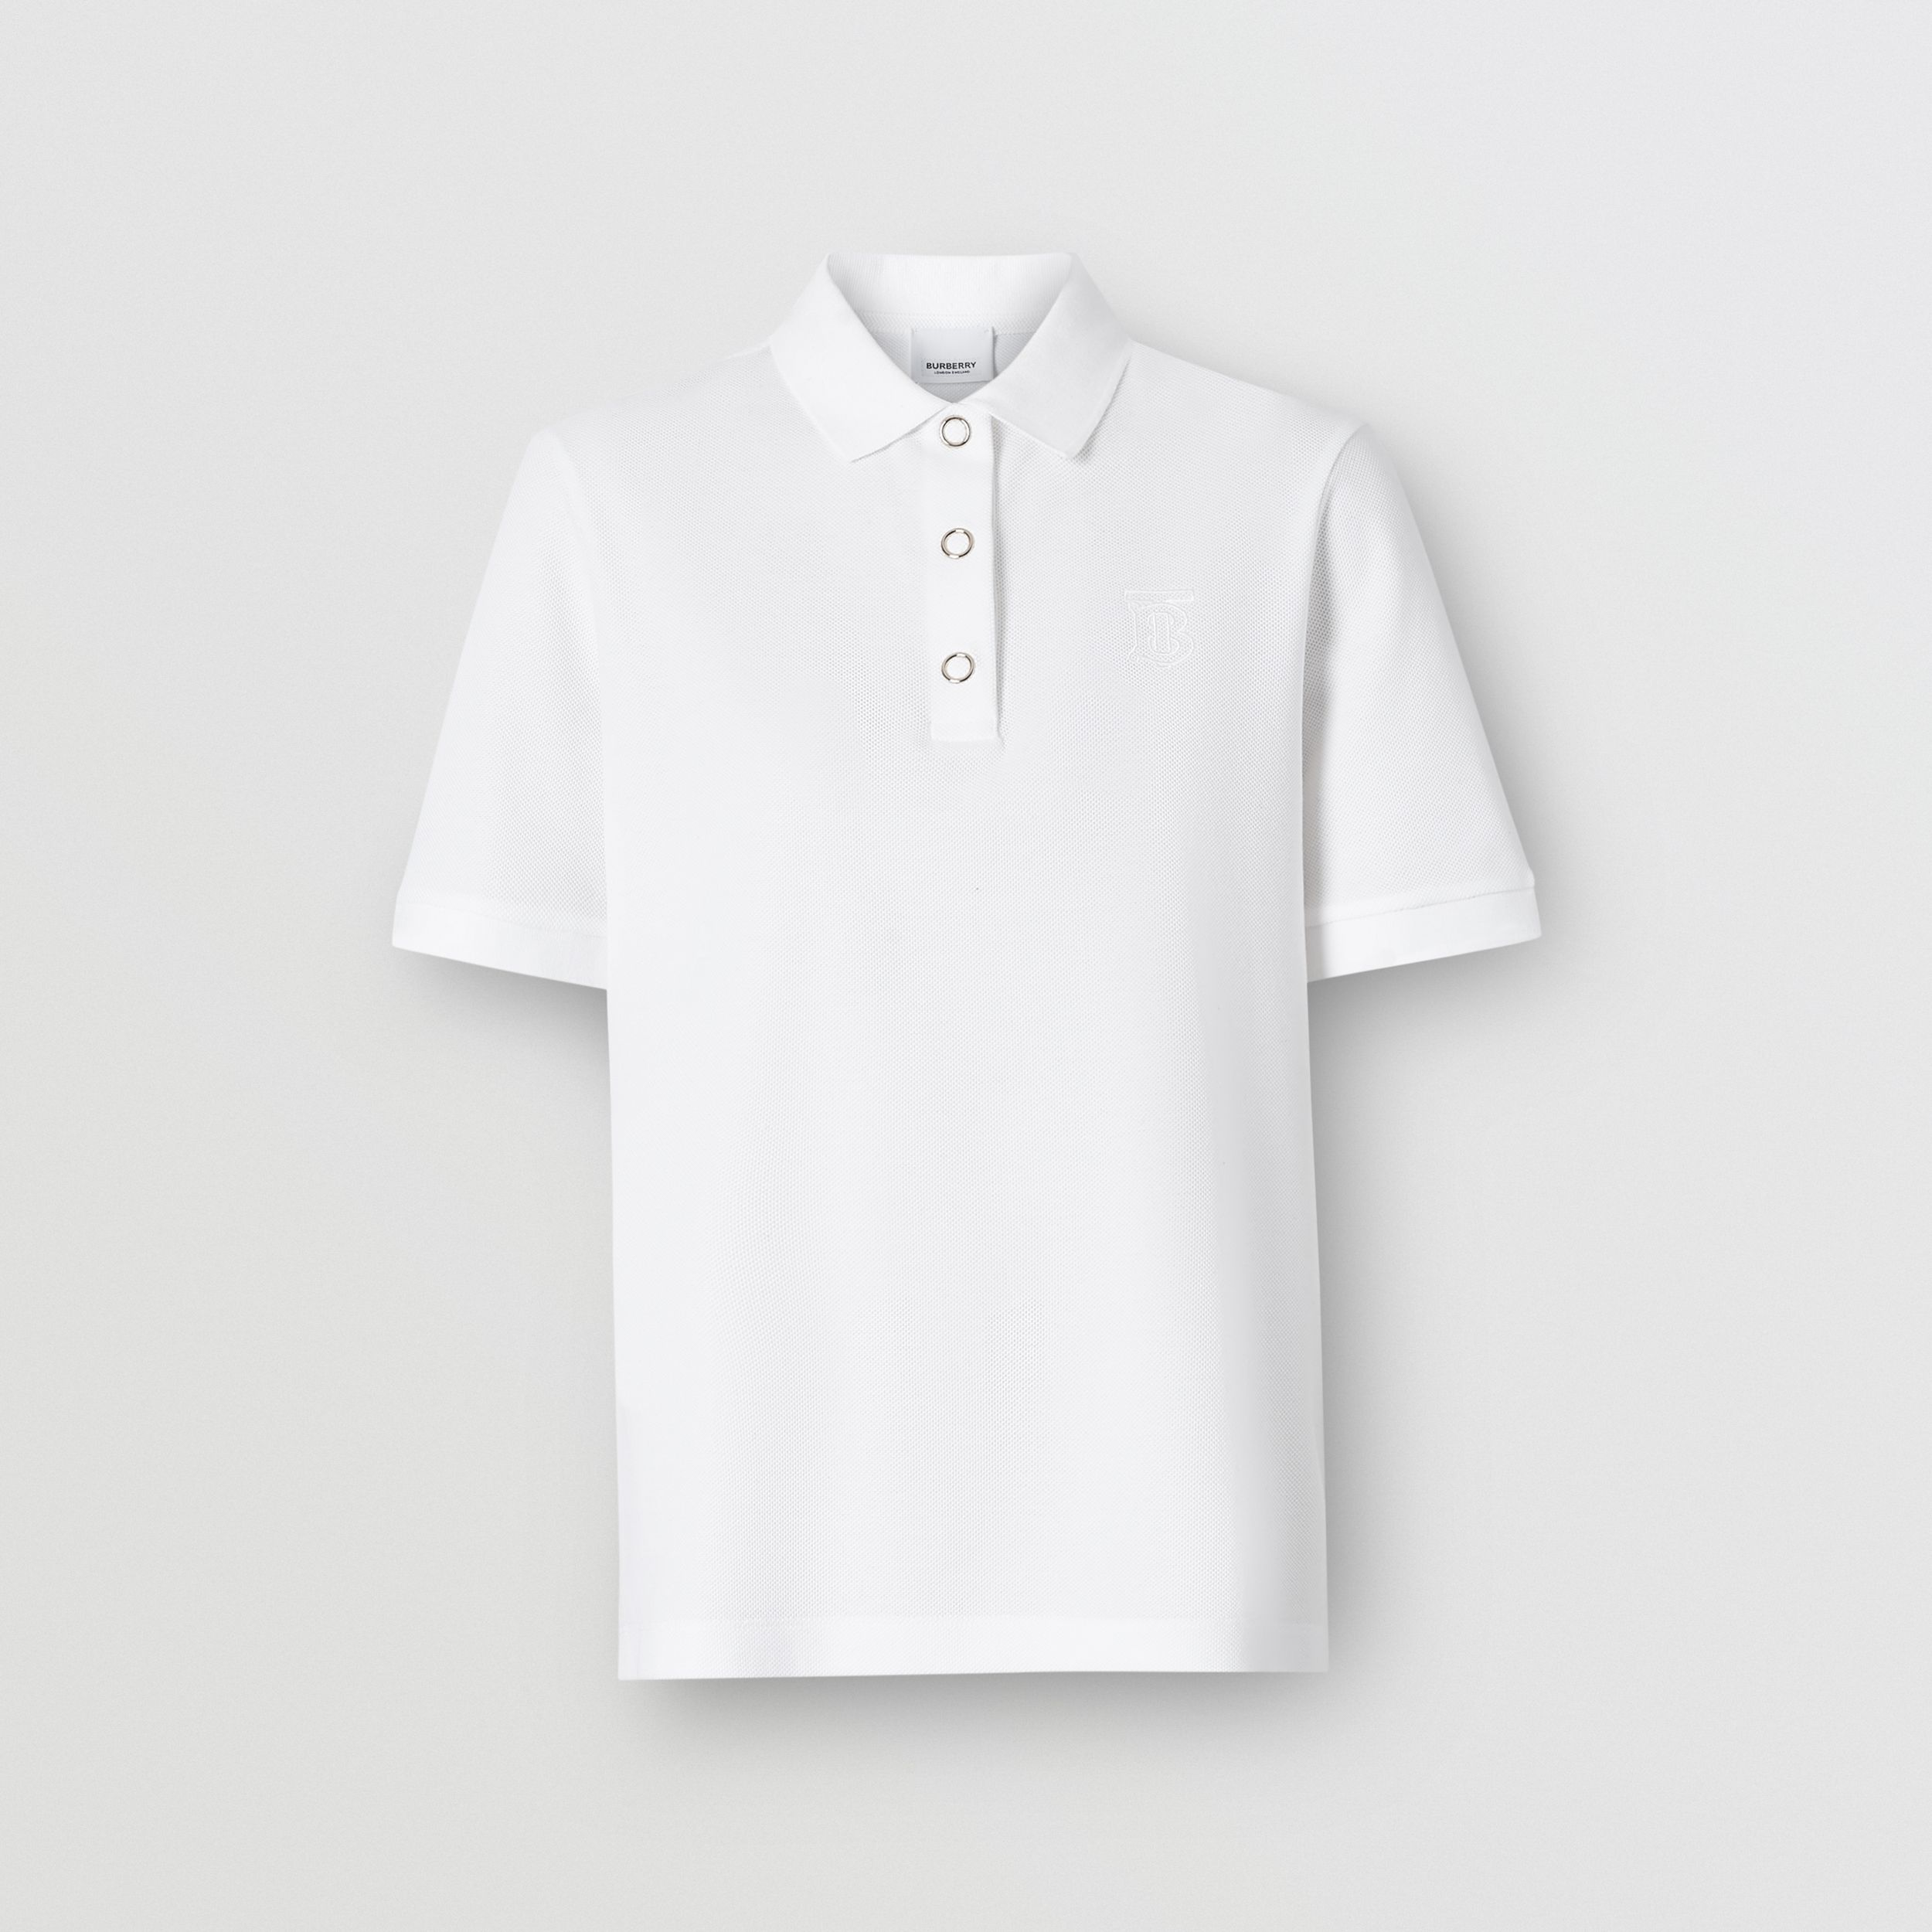 Monogram Motif Cotton Piqué Polo Shirt in White - Women | Burberry - 4